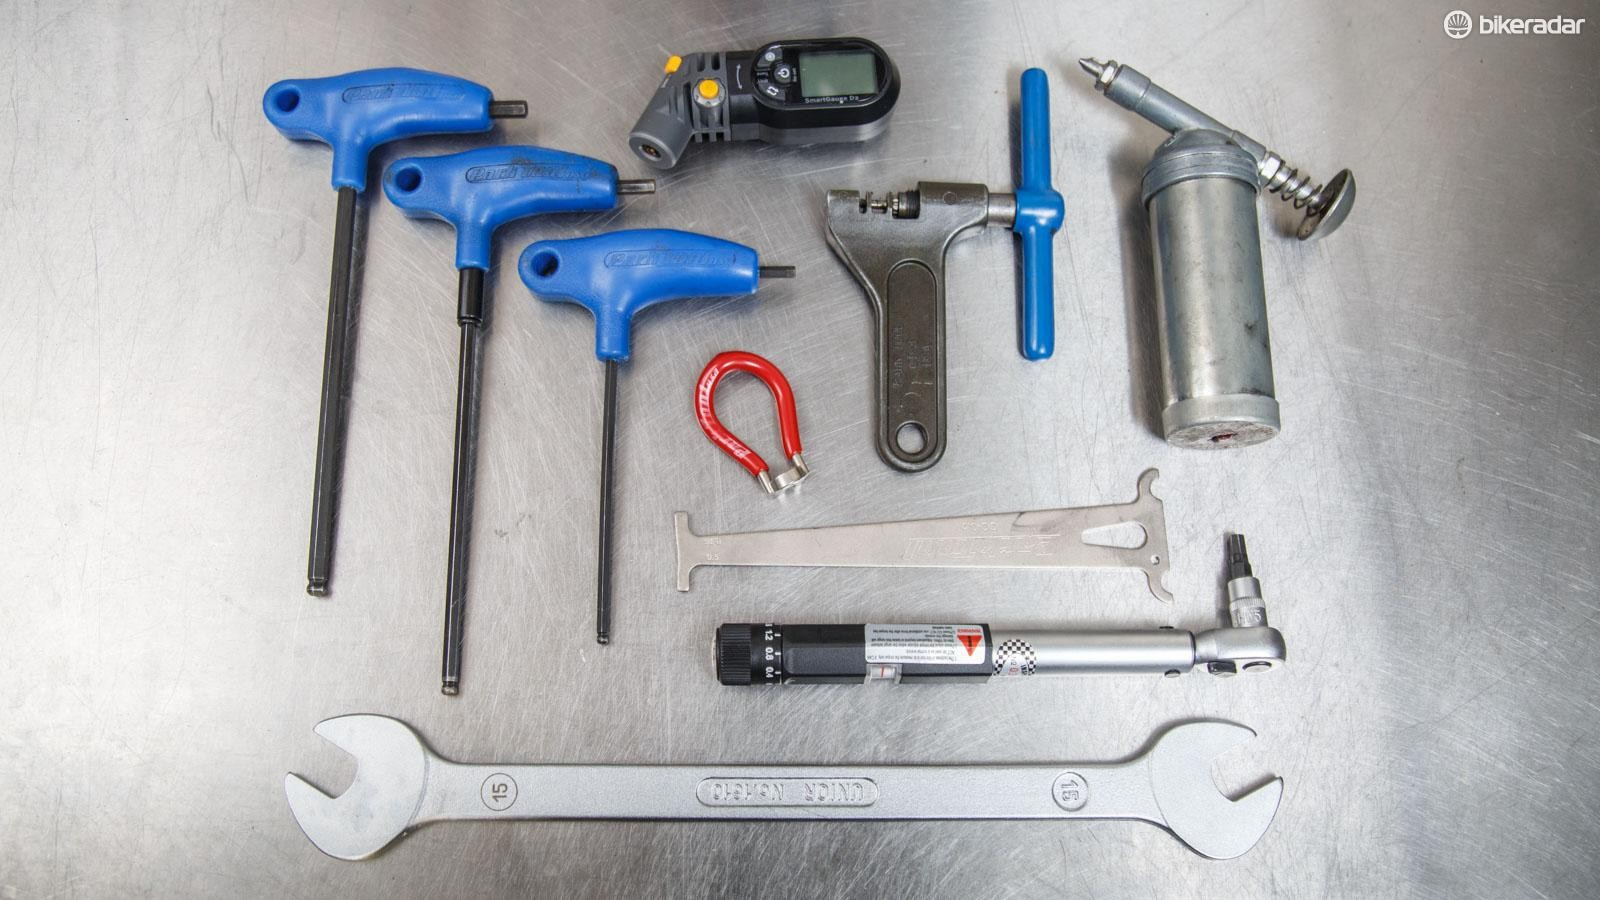 Some basic bicycle tools are required for these tips